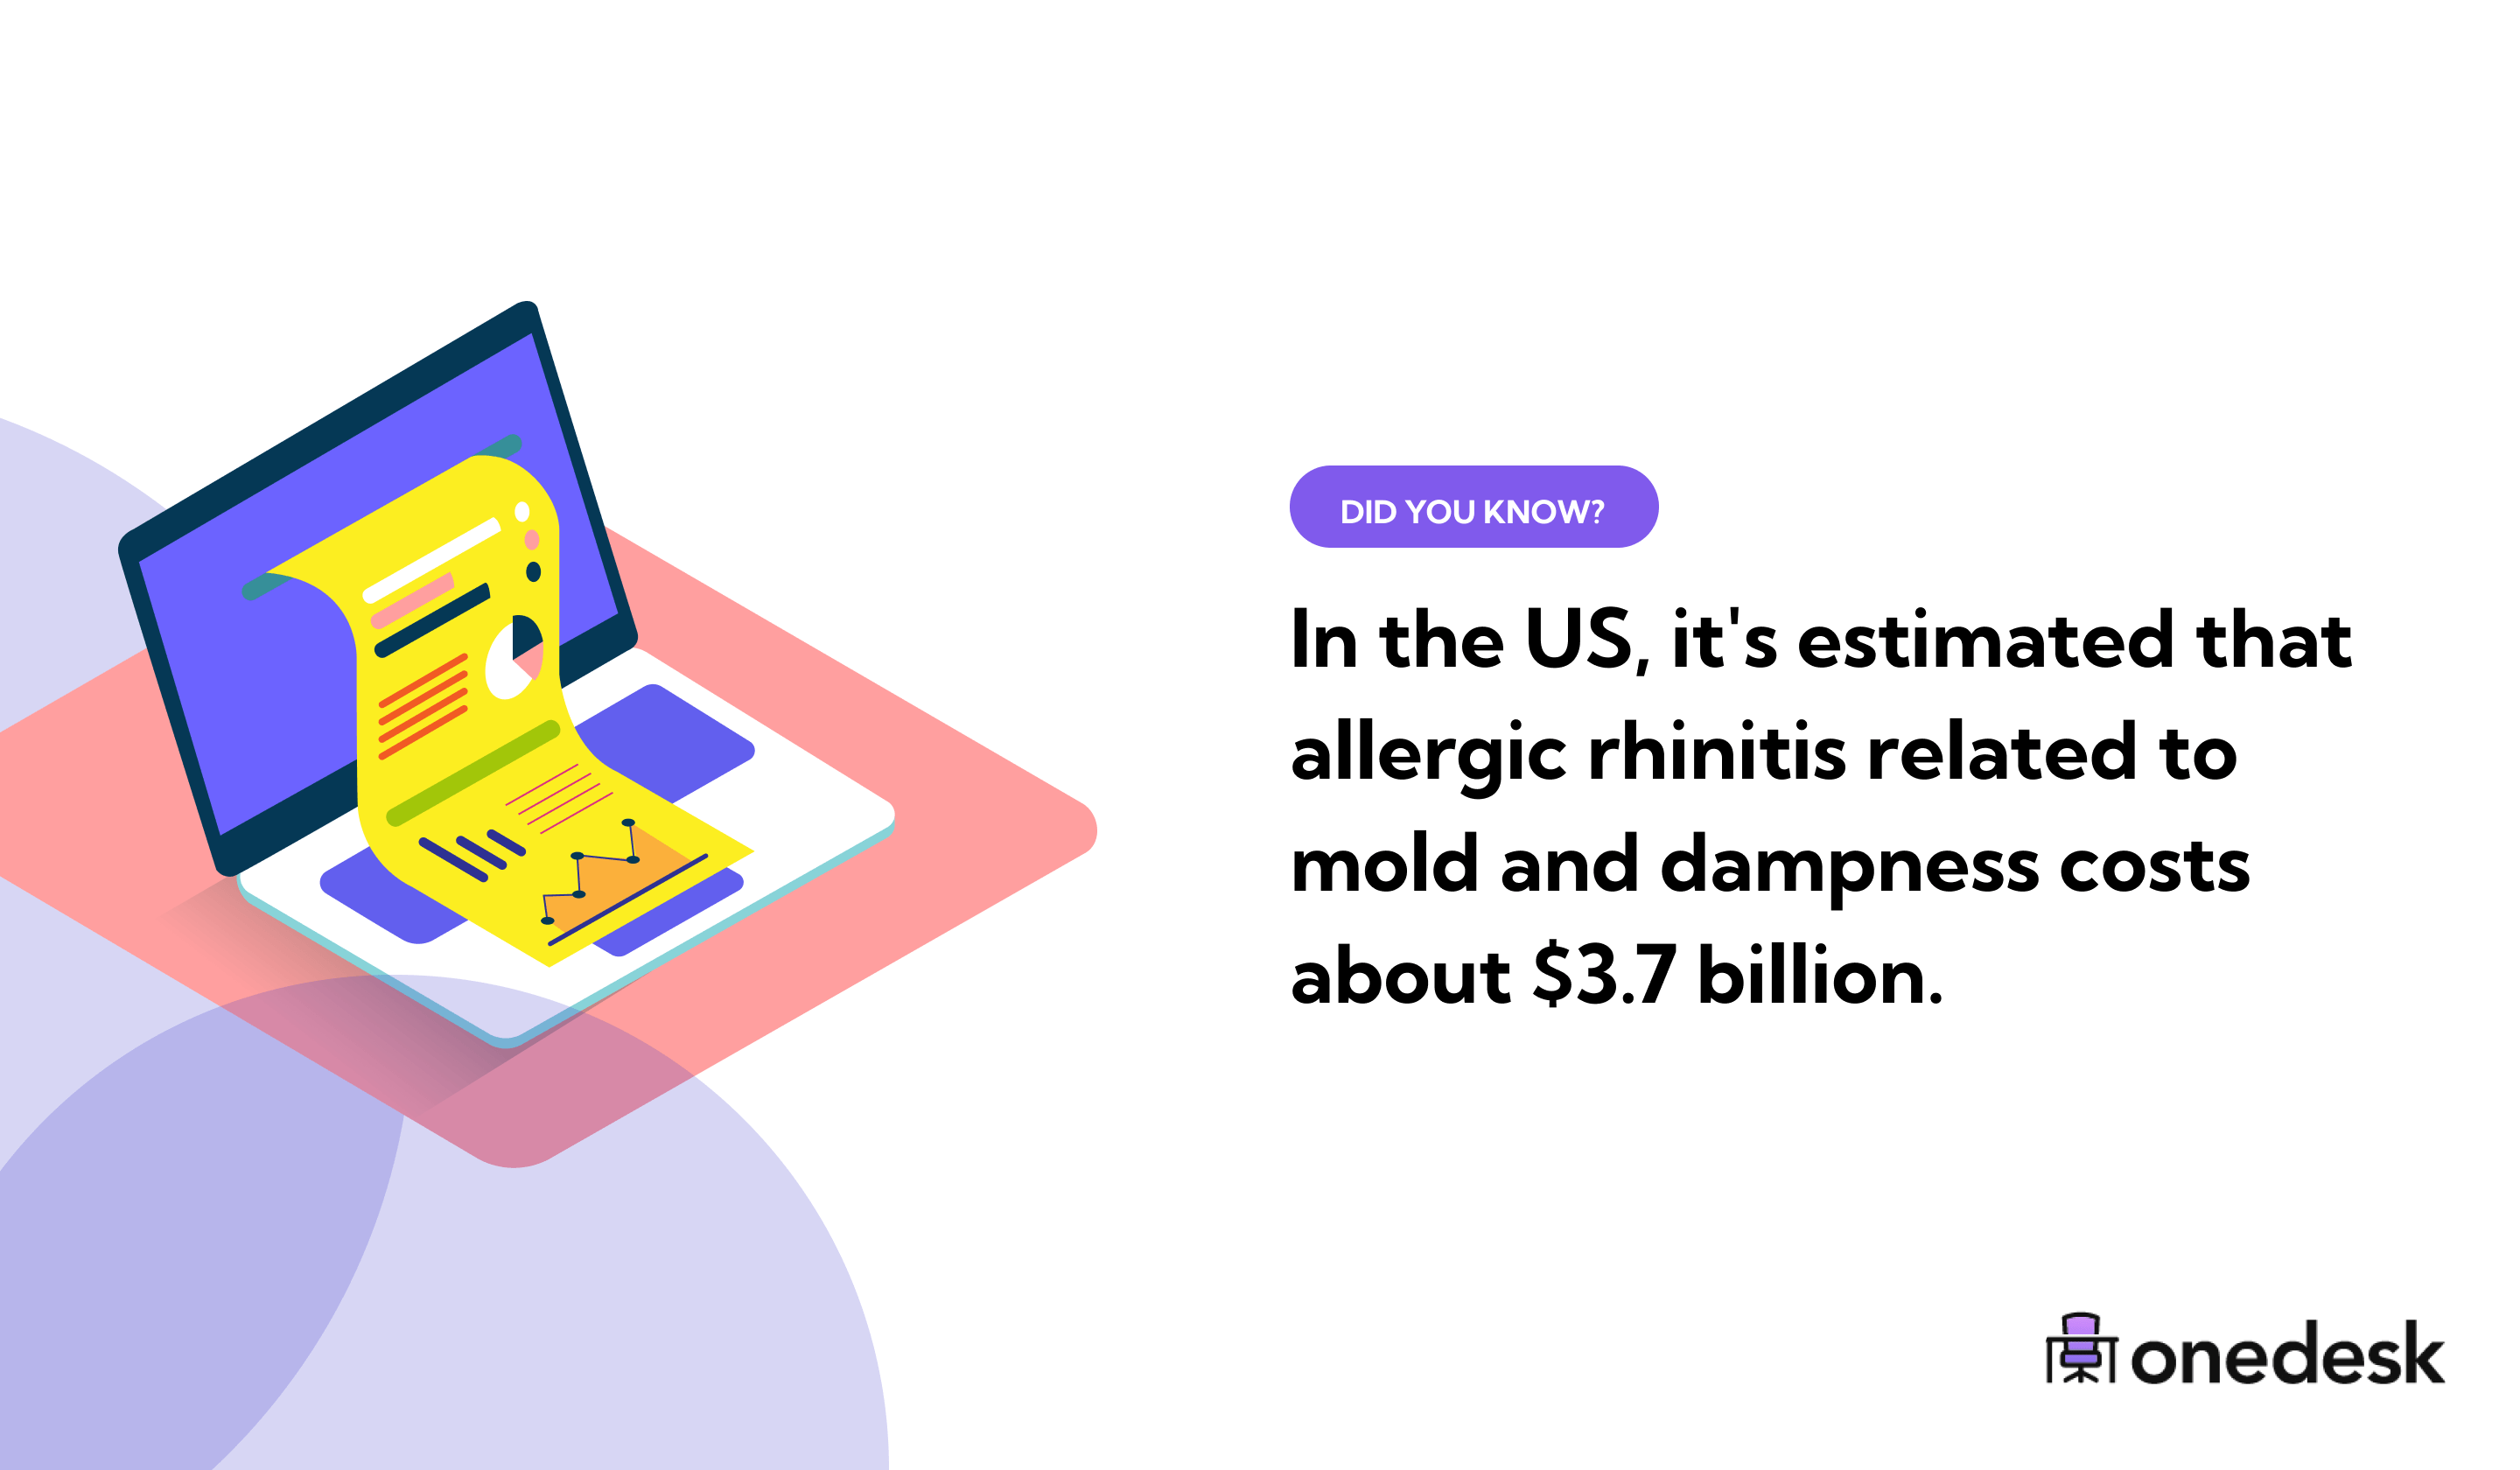 cost of allergic rhinitis related to mold